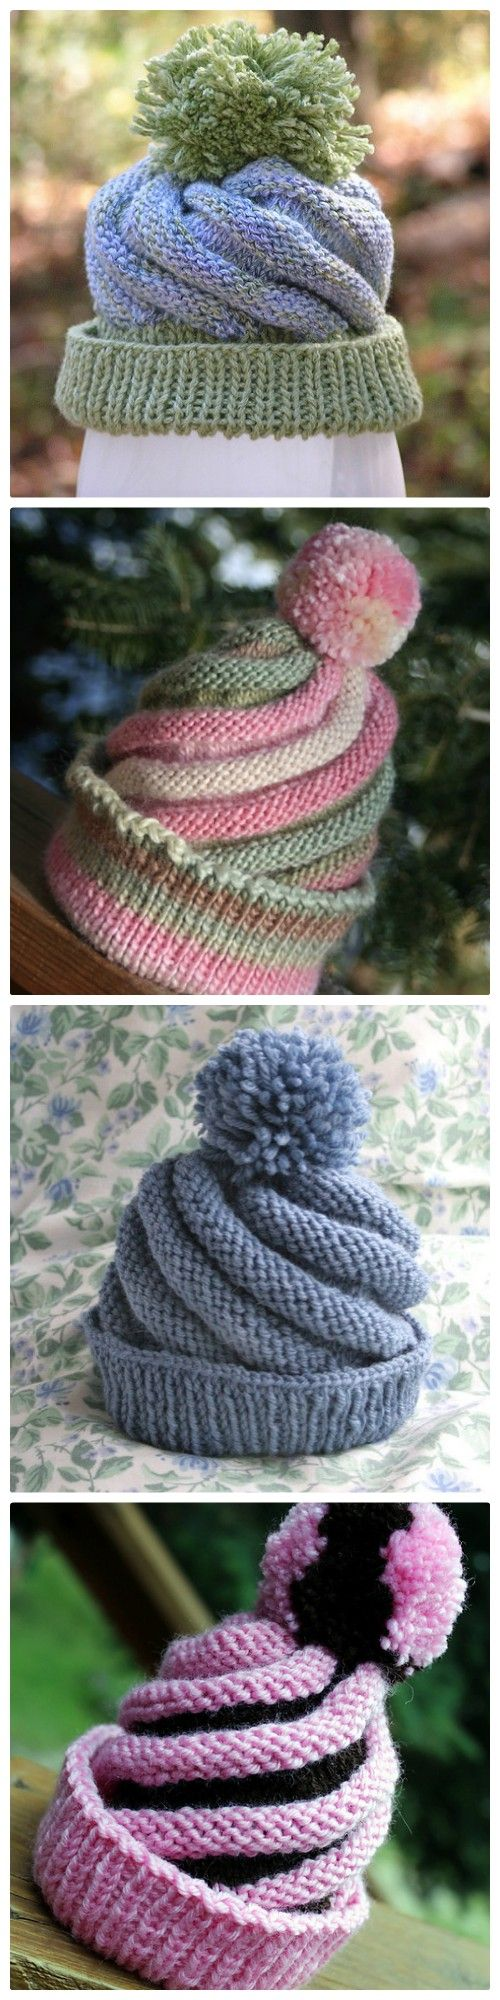 This Swirled Ski Cap Free Knitting Pattern is a stylish addition to your winter wardrobe. Check out all the ideas and watch the video too.